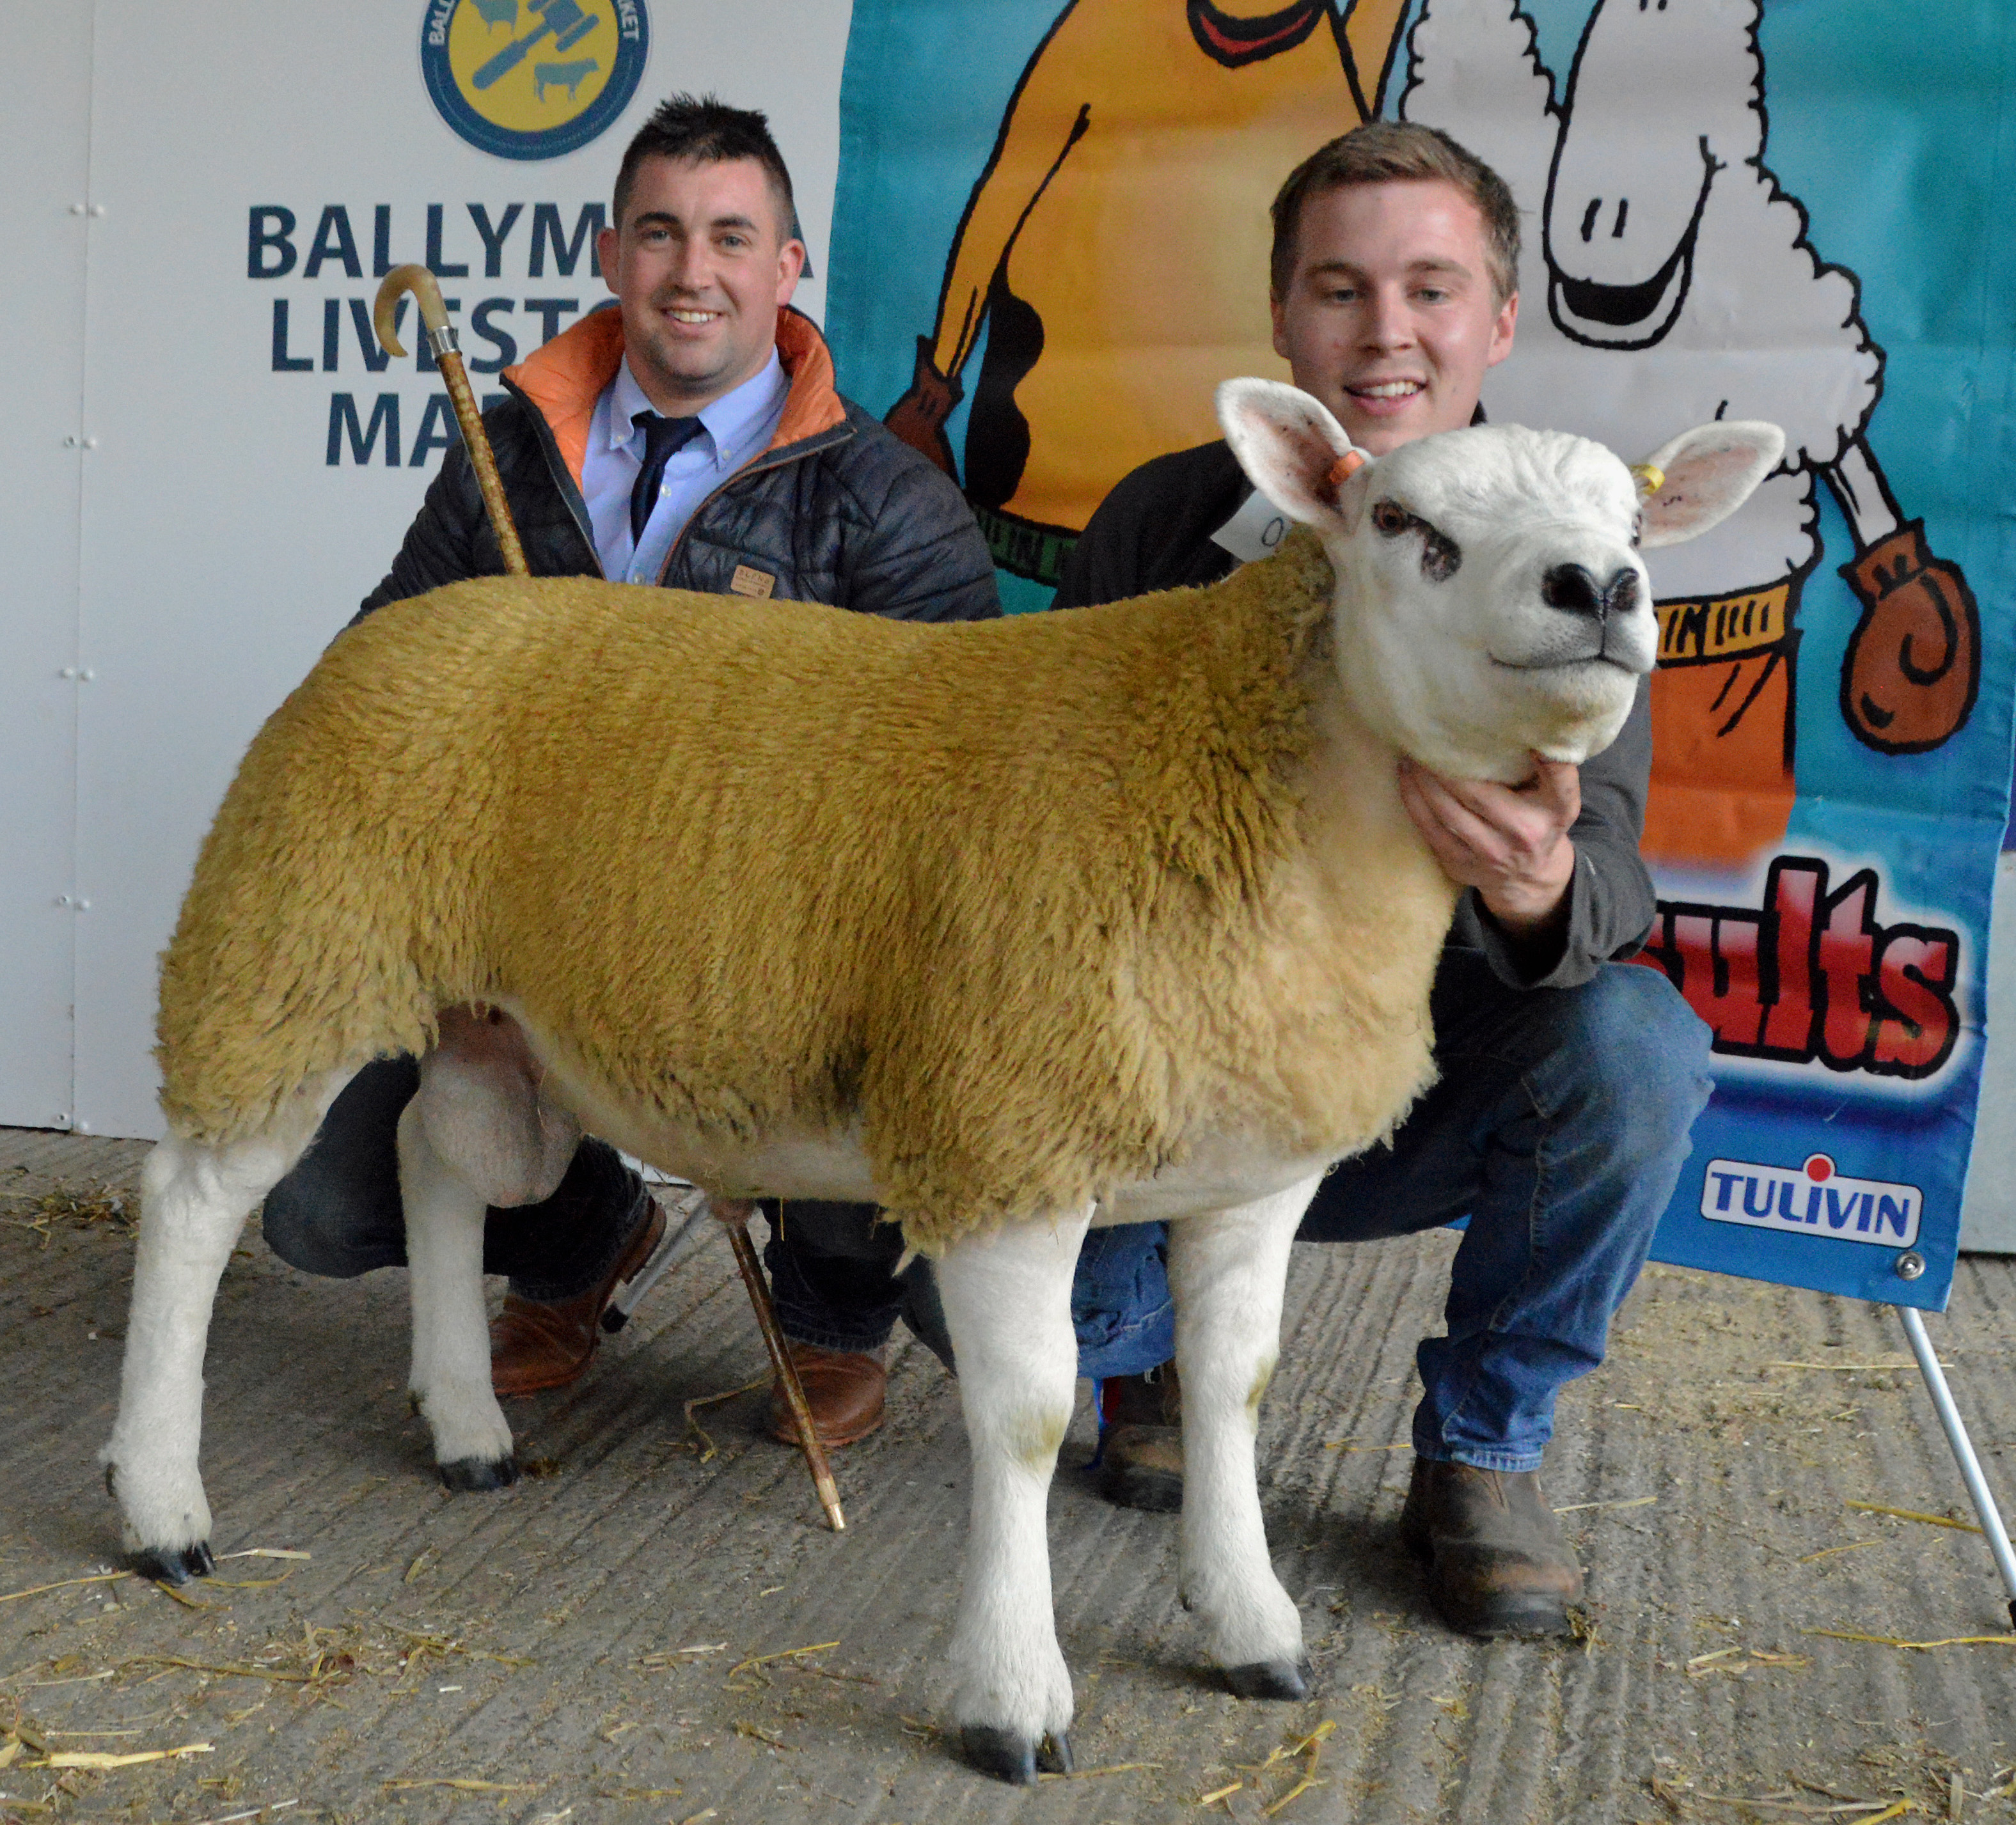 Kiltarriff champion leads NITBC Ballymena sale at 2000gns